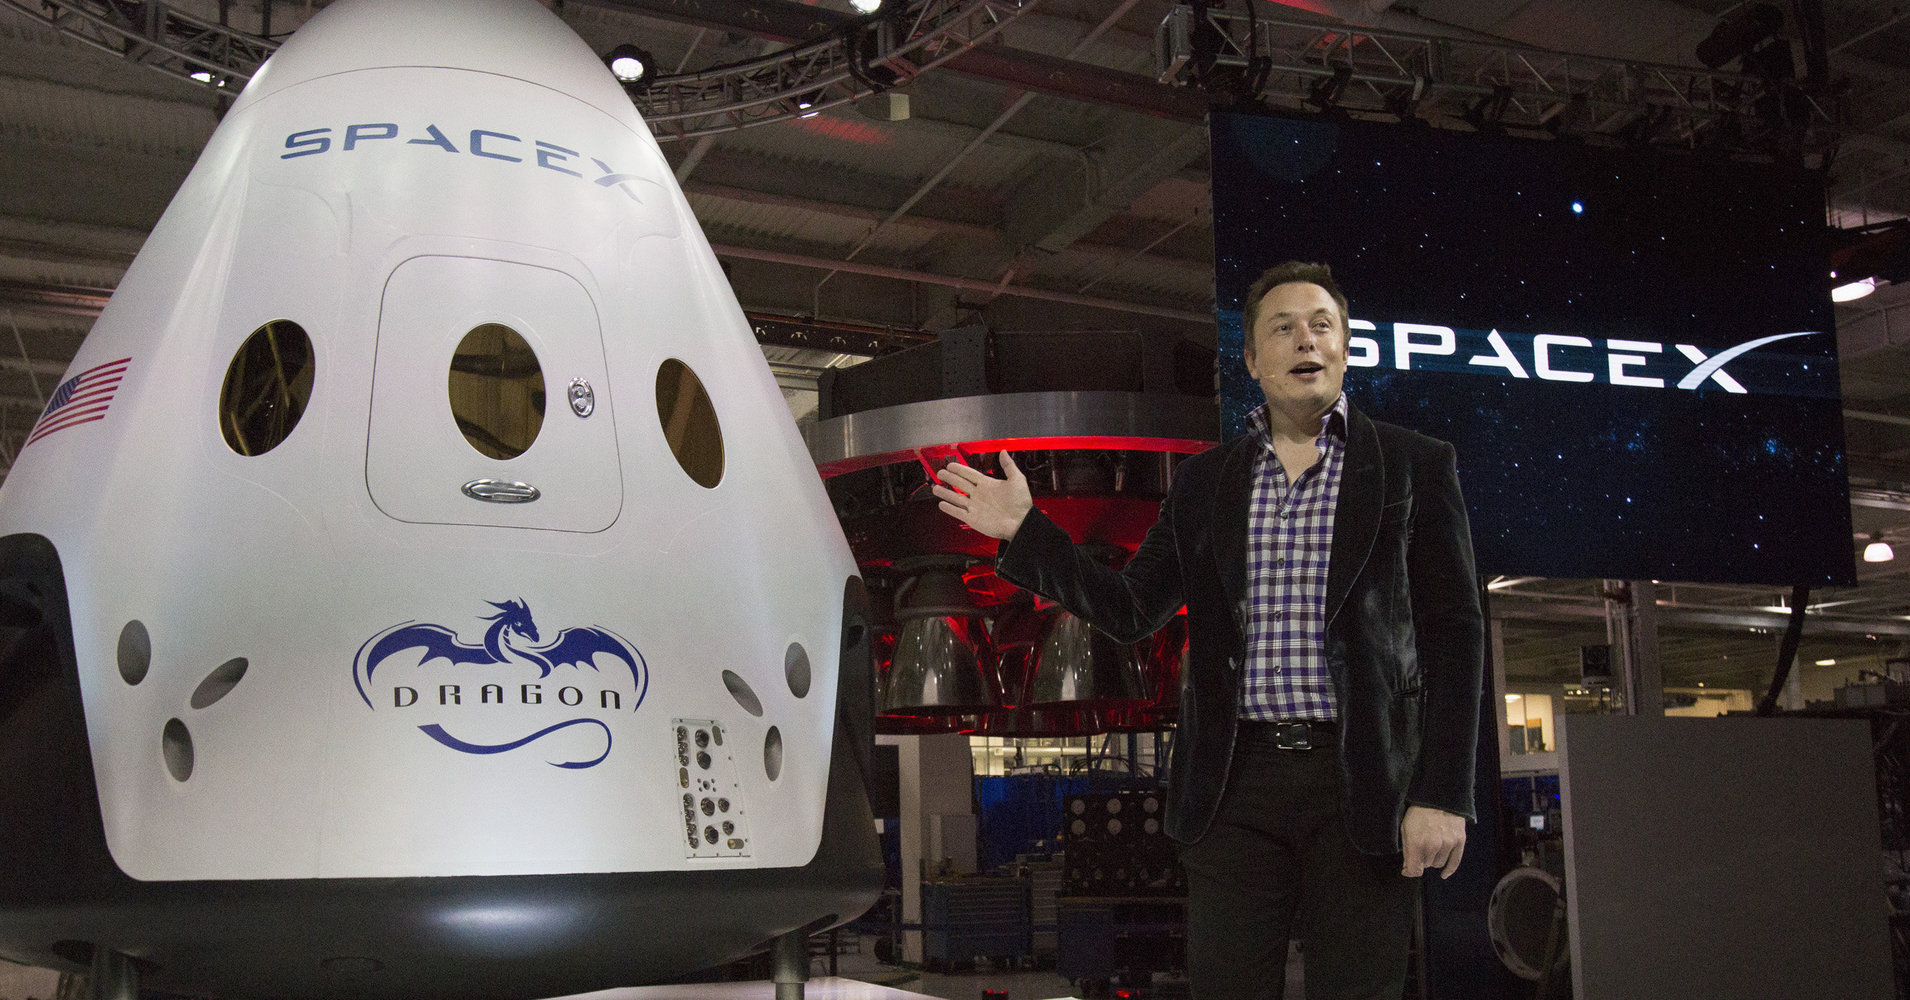 SpaceX CEO Musk speaks after unveiling the Dragon V2 spacecraft in Hawthorne